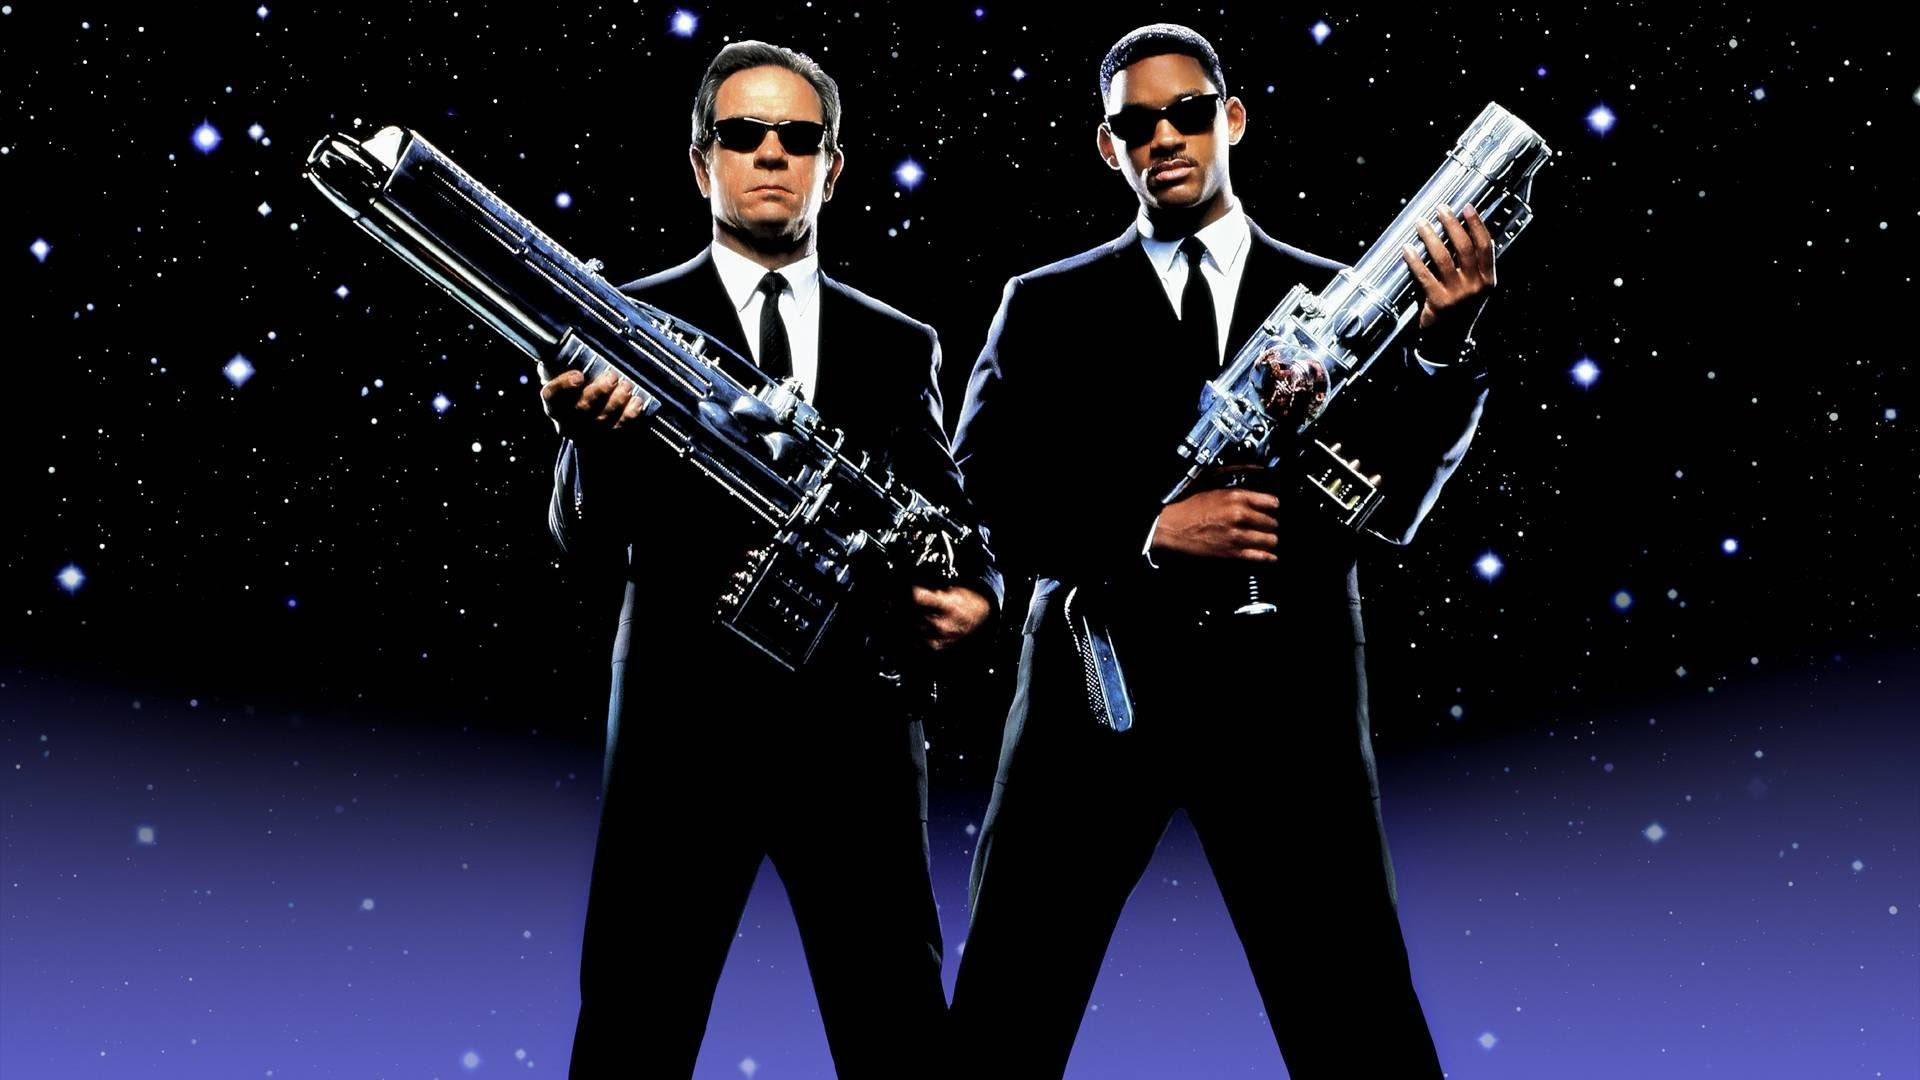 The Original Men In Black Marked A Transition Of The Hollywood Blockbuster